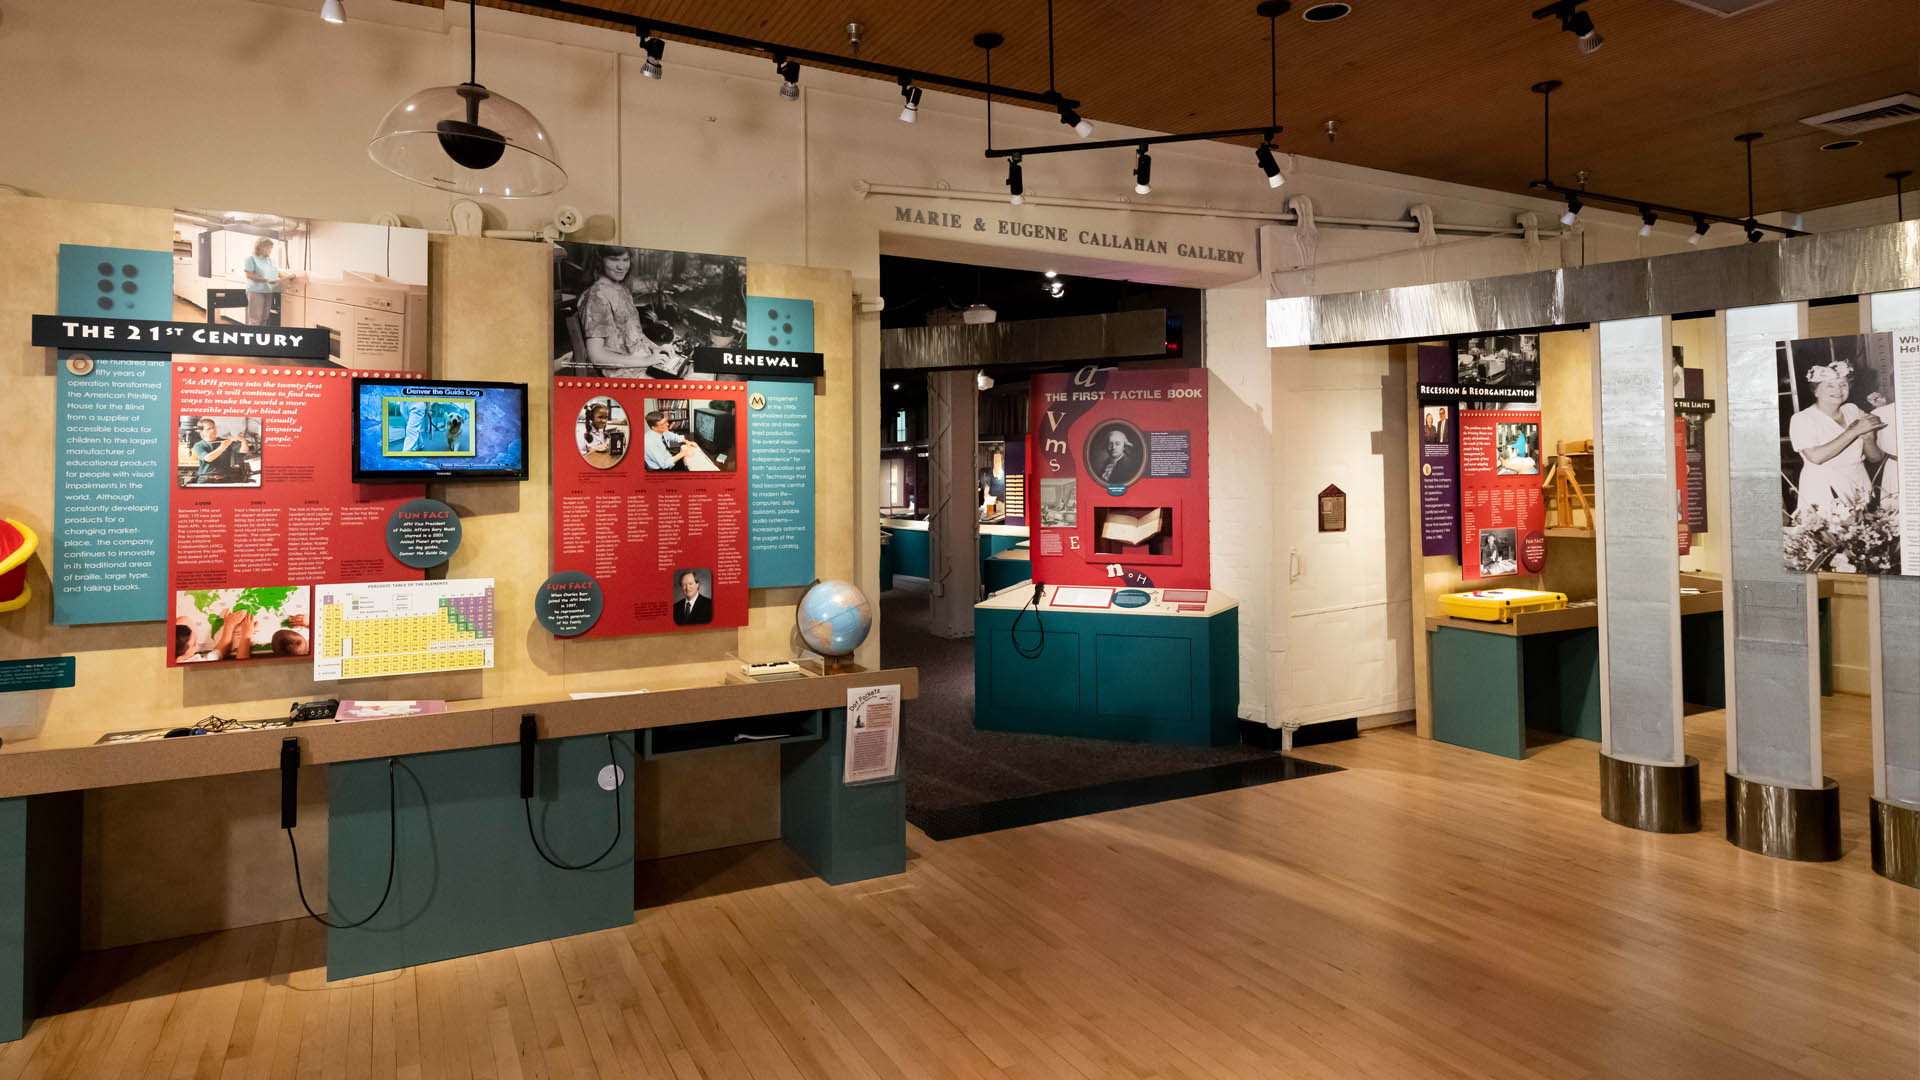 """Wide angle view of a museum exhibit with exhibit panels and display cases to left and entrance on right titled """"Marie and Eugene Callahan Gallery"""""""